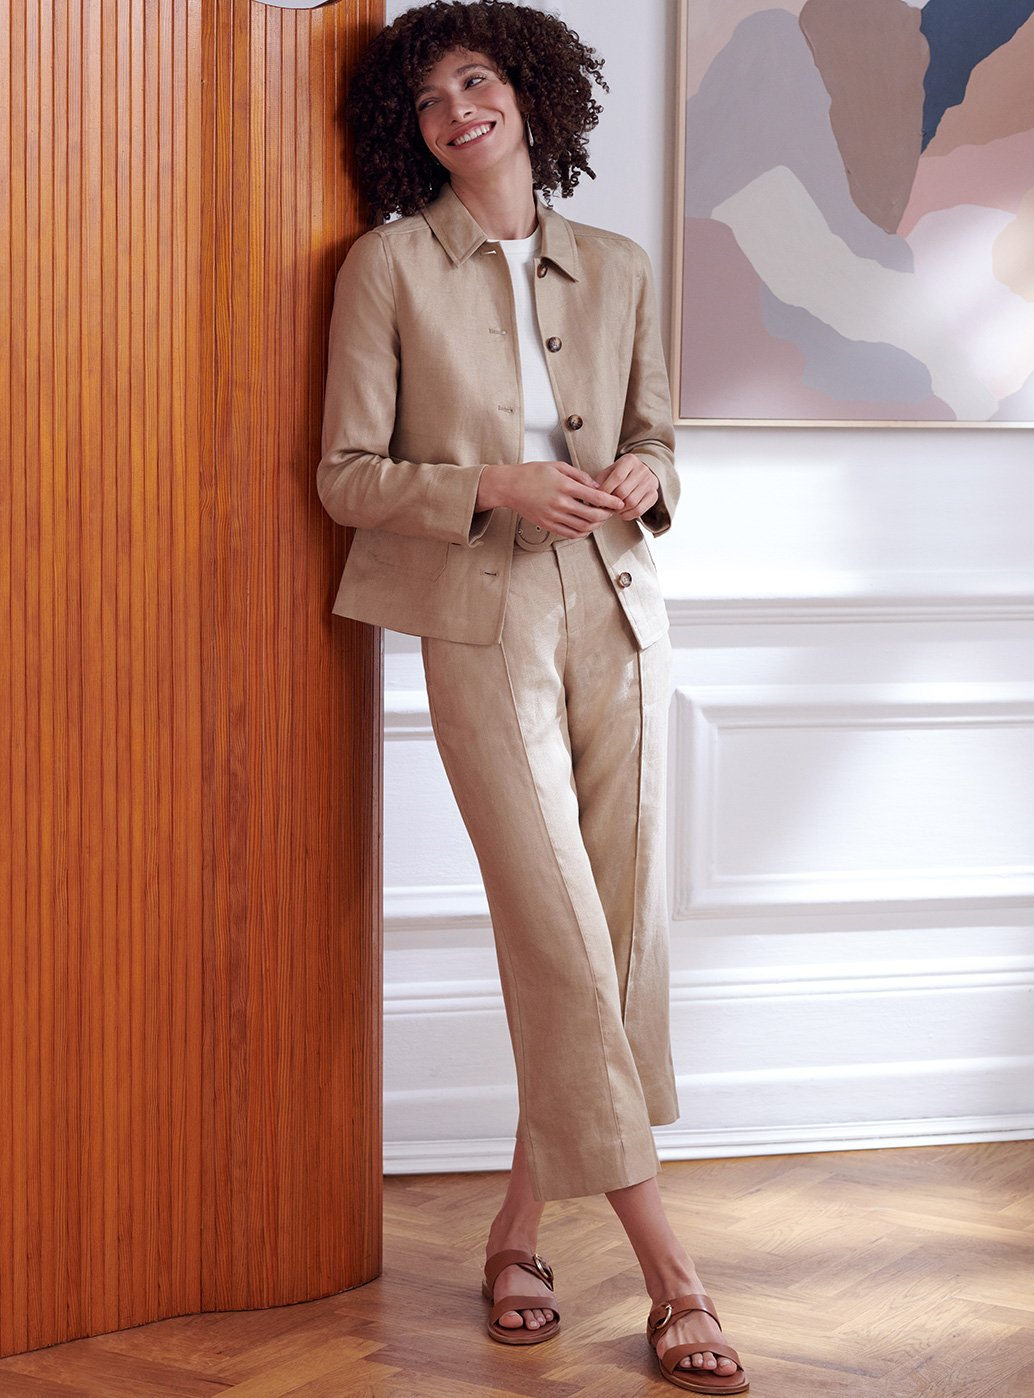 Model wears a beige linen suit and brown leather sandals.